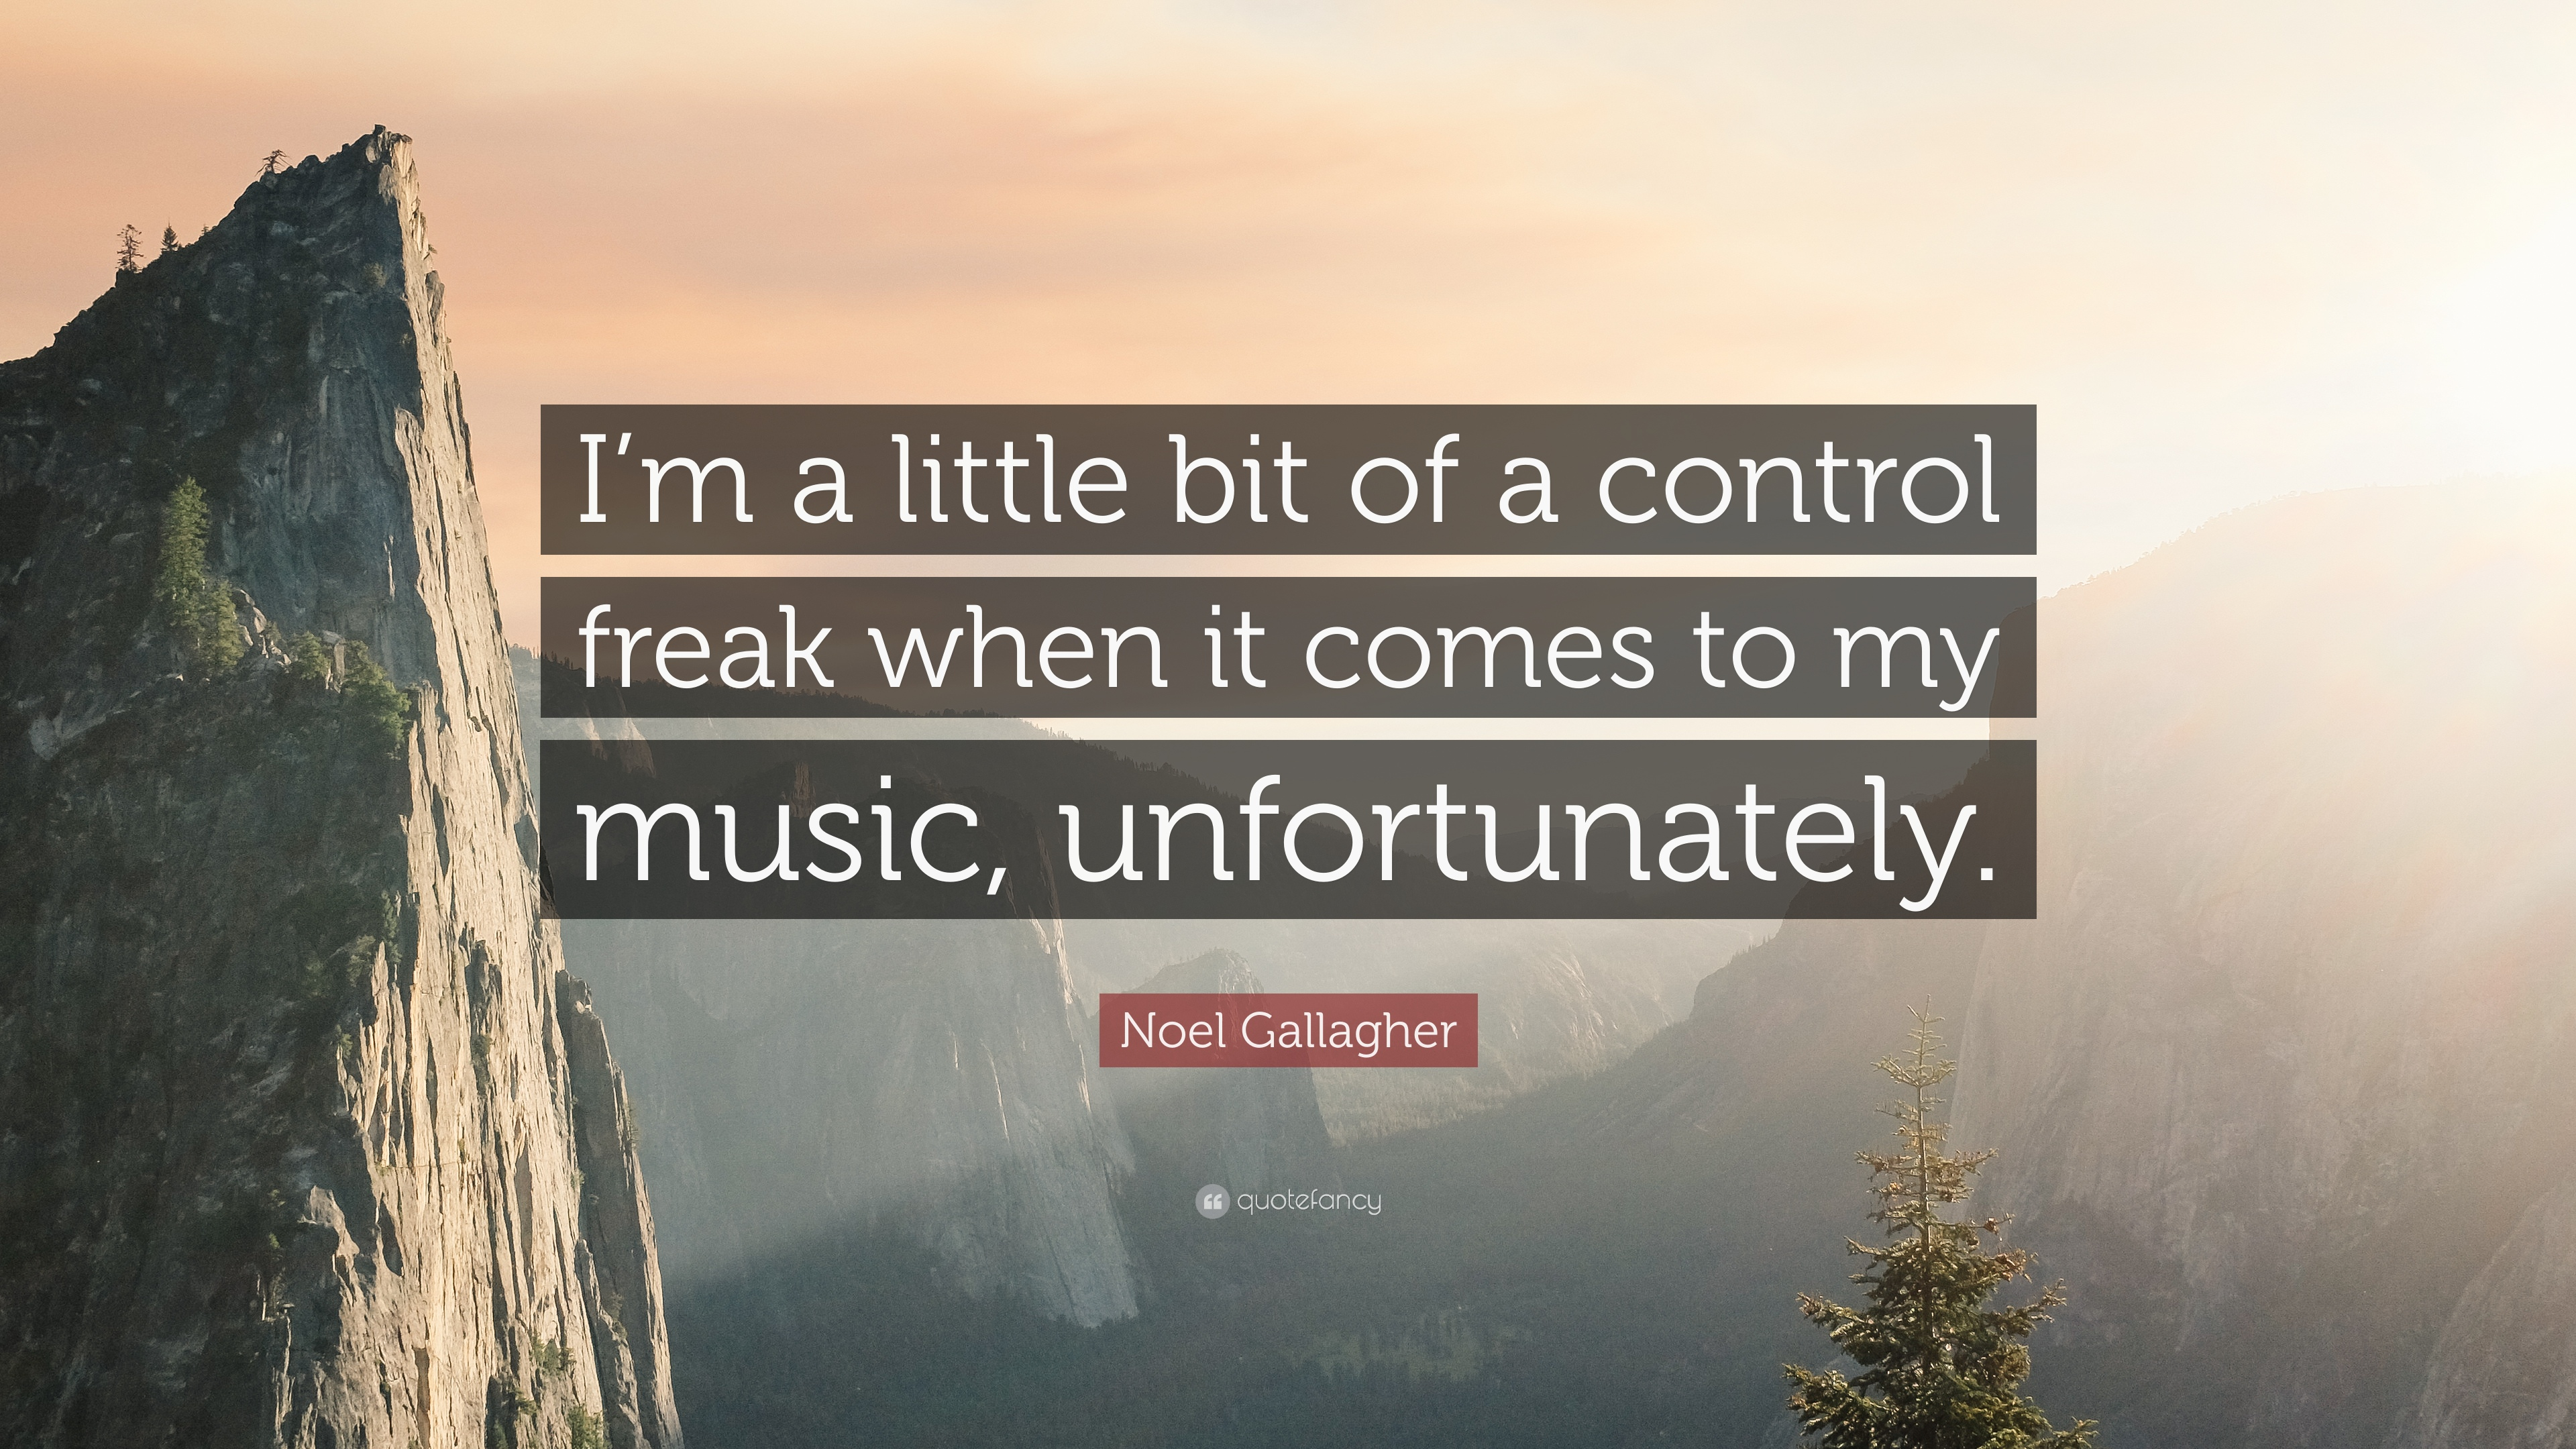 Top Wallpaper Music Freak - 634947-Noel-Gallagher-Quote-I-m-a-little-bit-of-a-control-freak-when-it  Photograph_624334.jpg